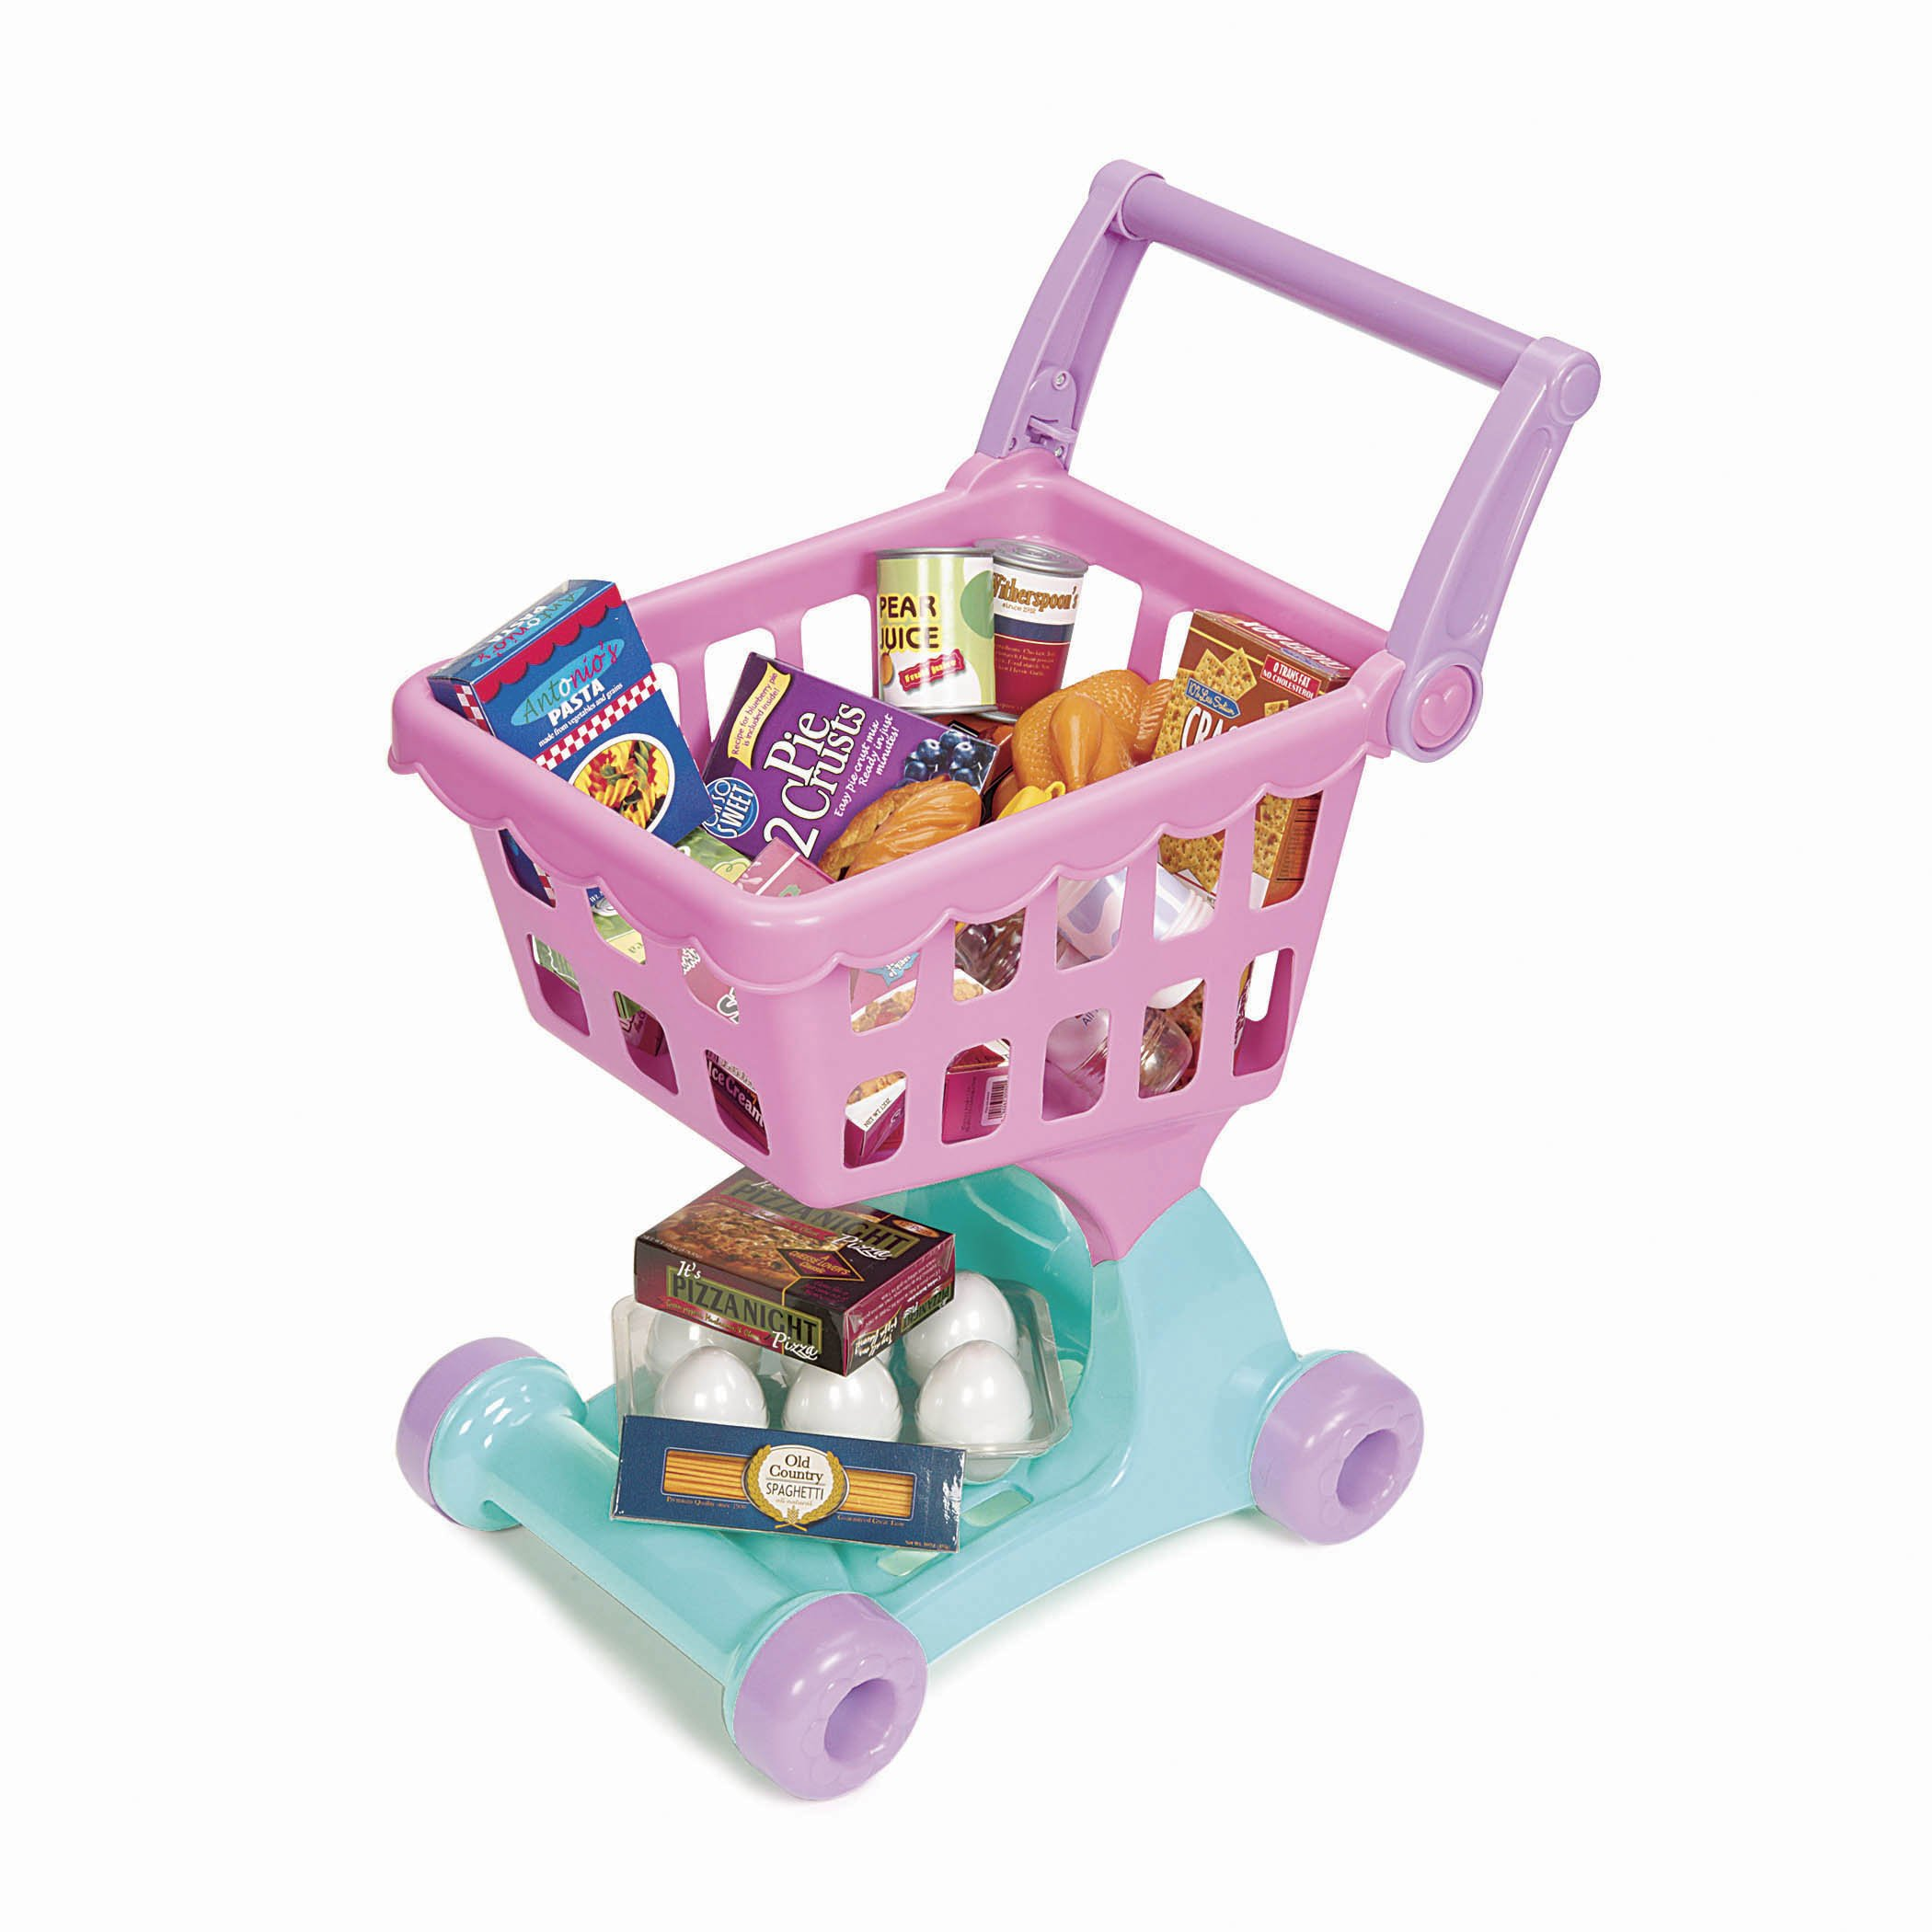 Play Circle by Battat - Shopping Day Grocery Cart - 30-piece Toy Shopping Cart and Pretend Food Playset - Grocery, Kitchen and Food Toys for Toddlers Age 3 Years and Up by Play Circle by Battat